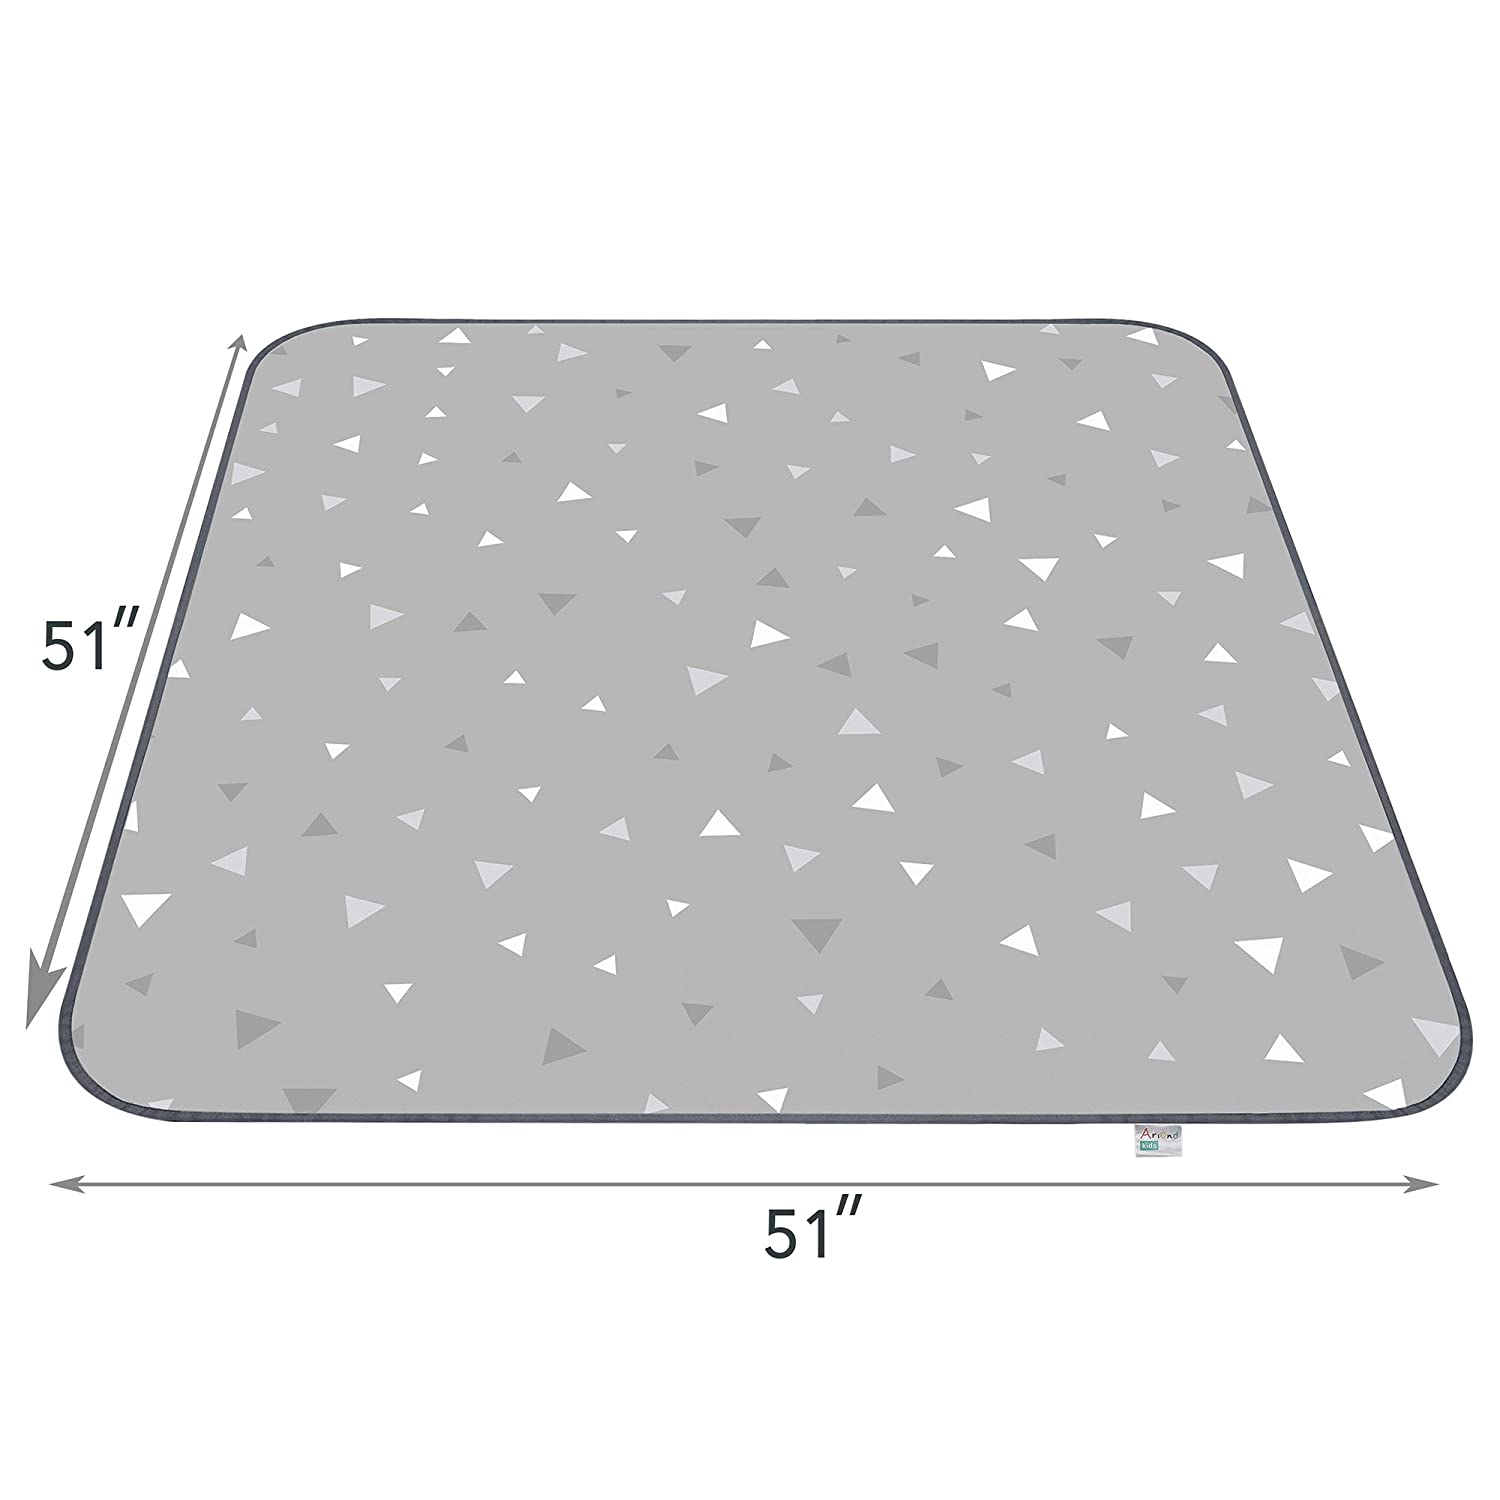 "Portable Feeding Mat,Grey Play Mat and Table Cloth for Art//Crafts Anti-Slip Floor Splash Mat Ariond Kids Washable 51/"" Waterproof Splat Mat for Under High Chair"